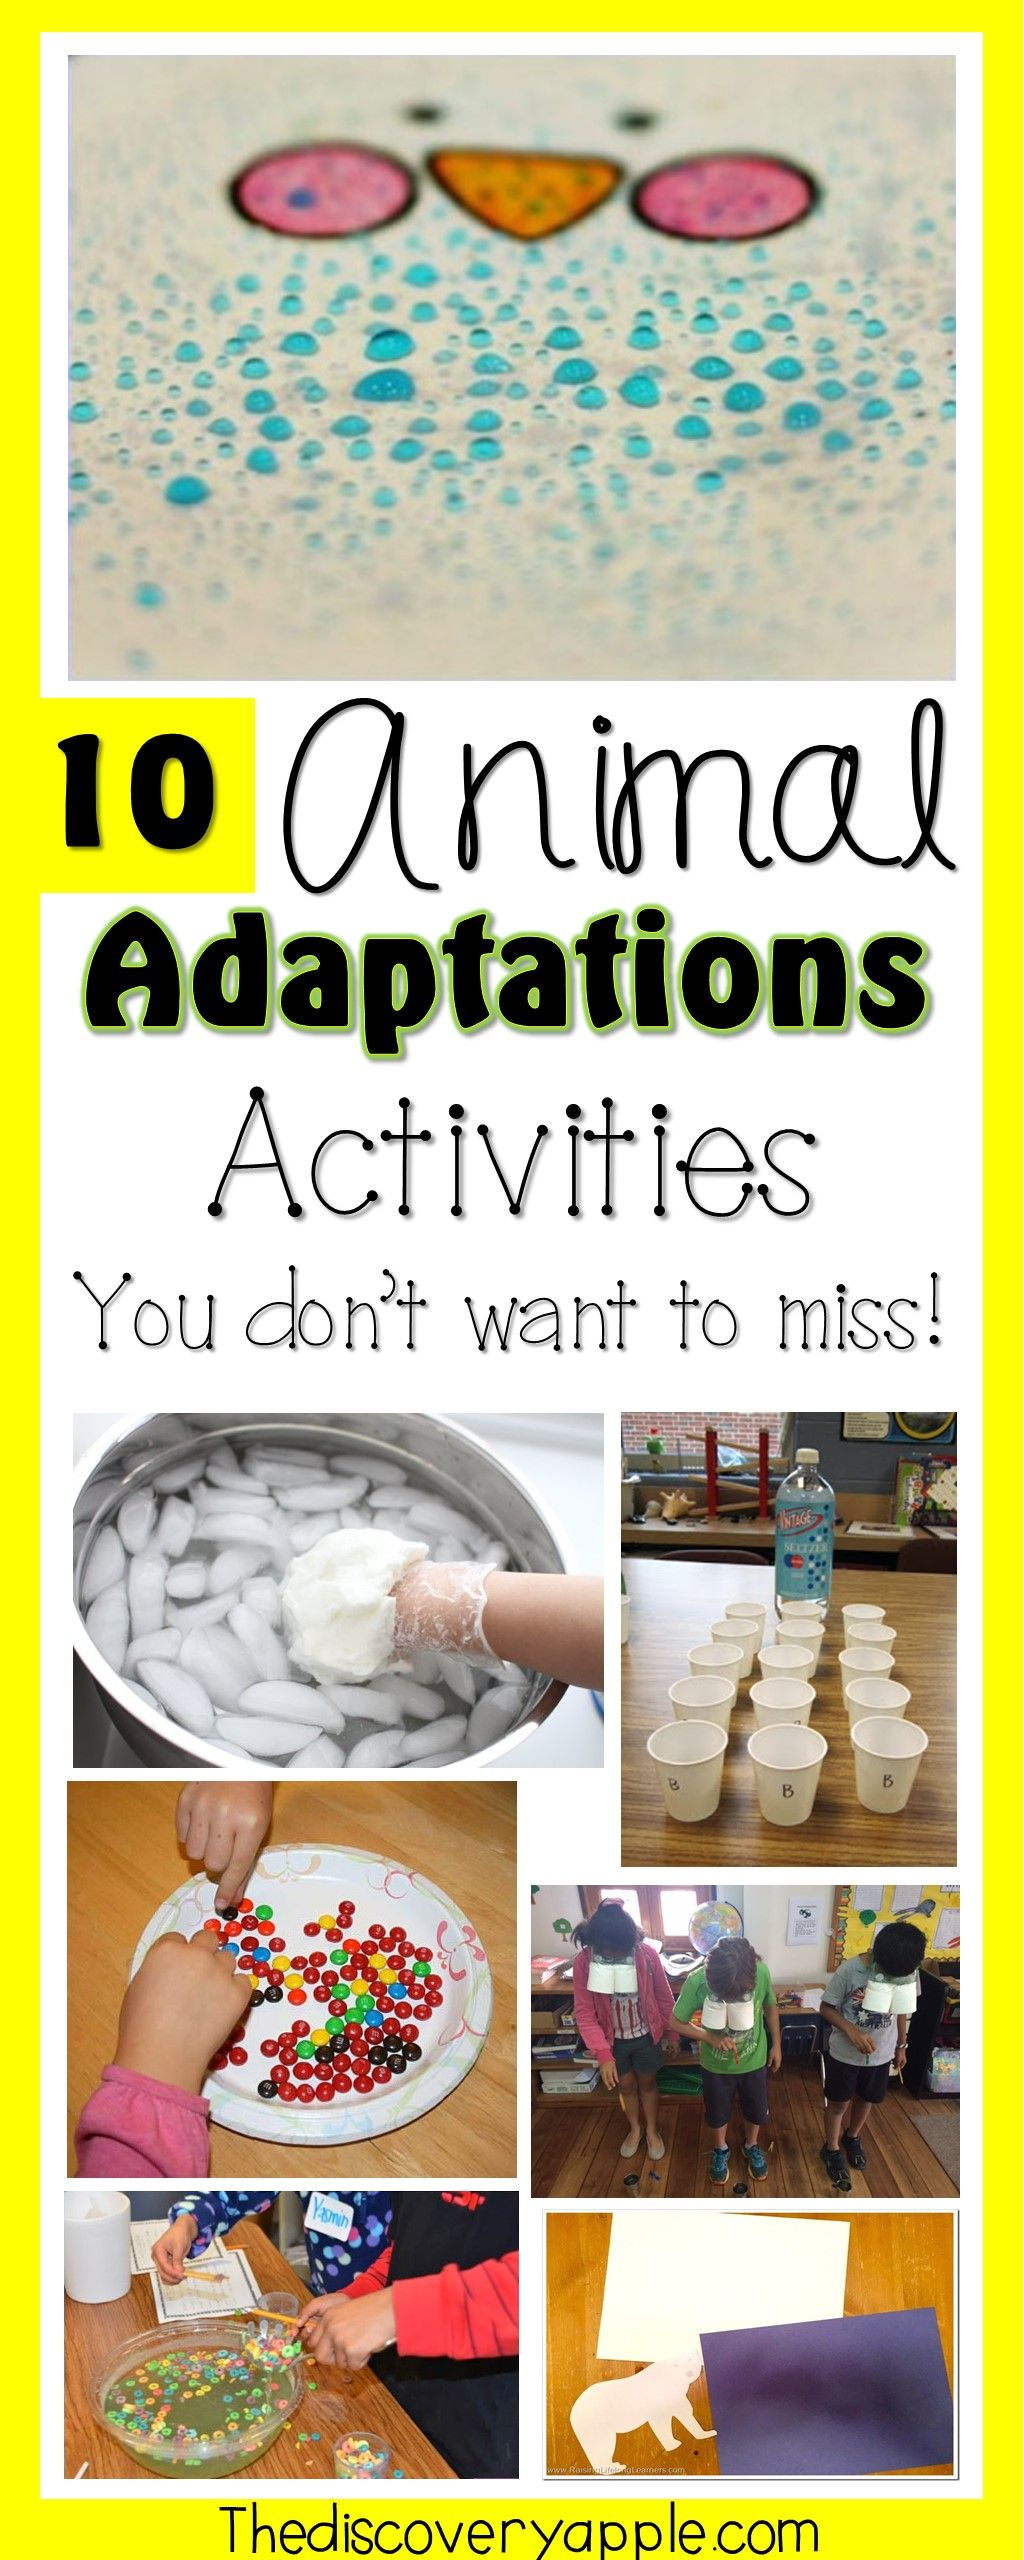 10 Exciting Animal Adaptations Activities and Resources - The Discovery  Apple   Animal adaptations activities [ 2560 x 1024 Pixel ]